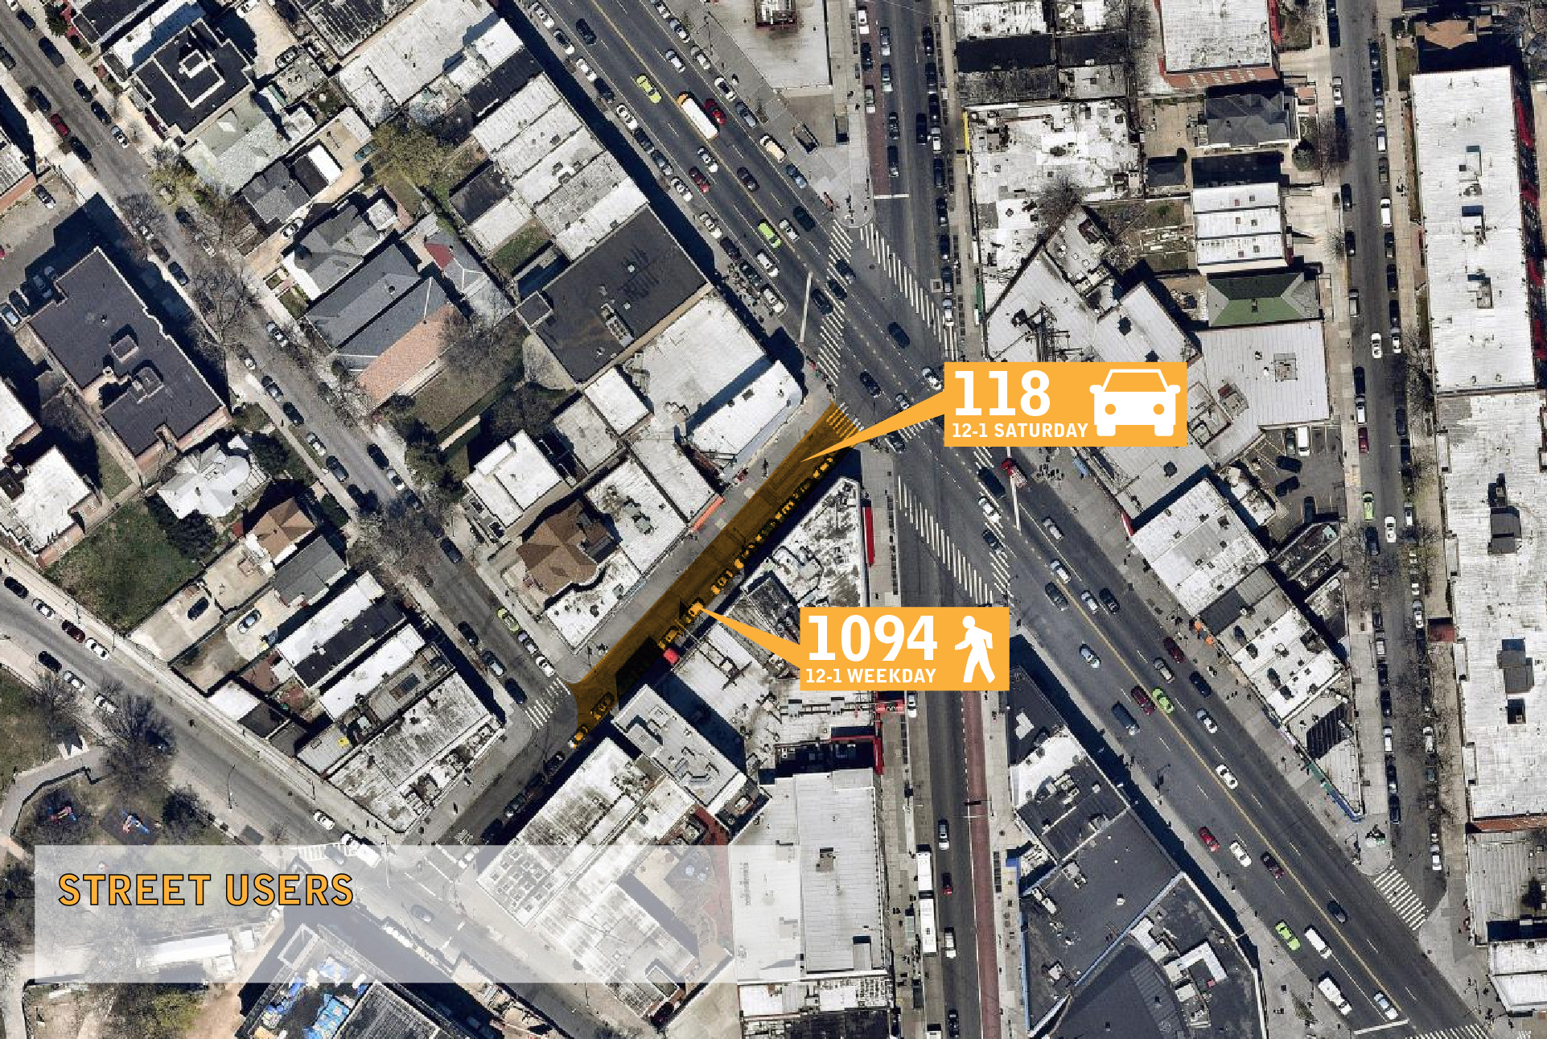 A diagram showing the peak usage of Hillel Place. There are yellow icons for both motorist counts and pedestrian counts.